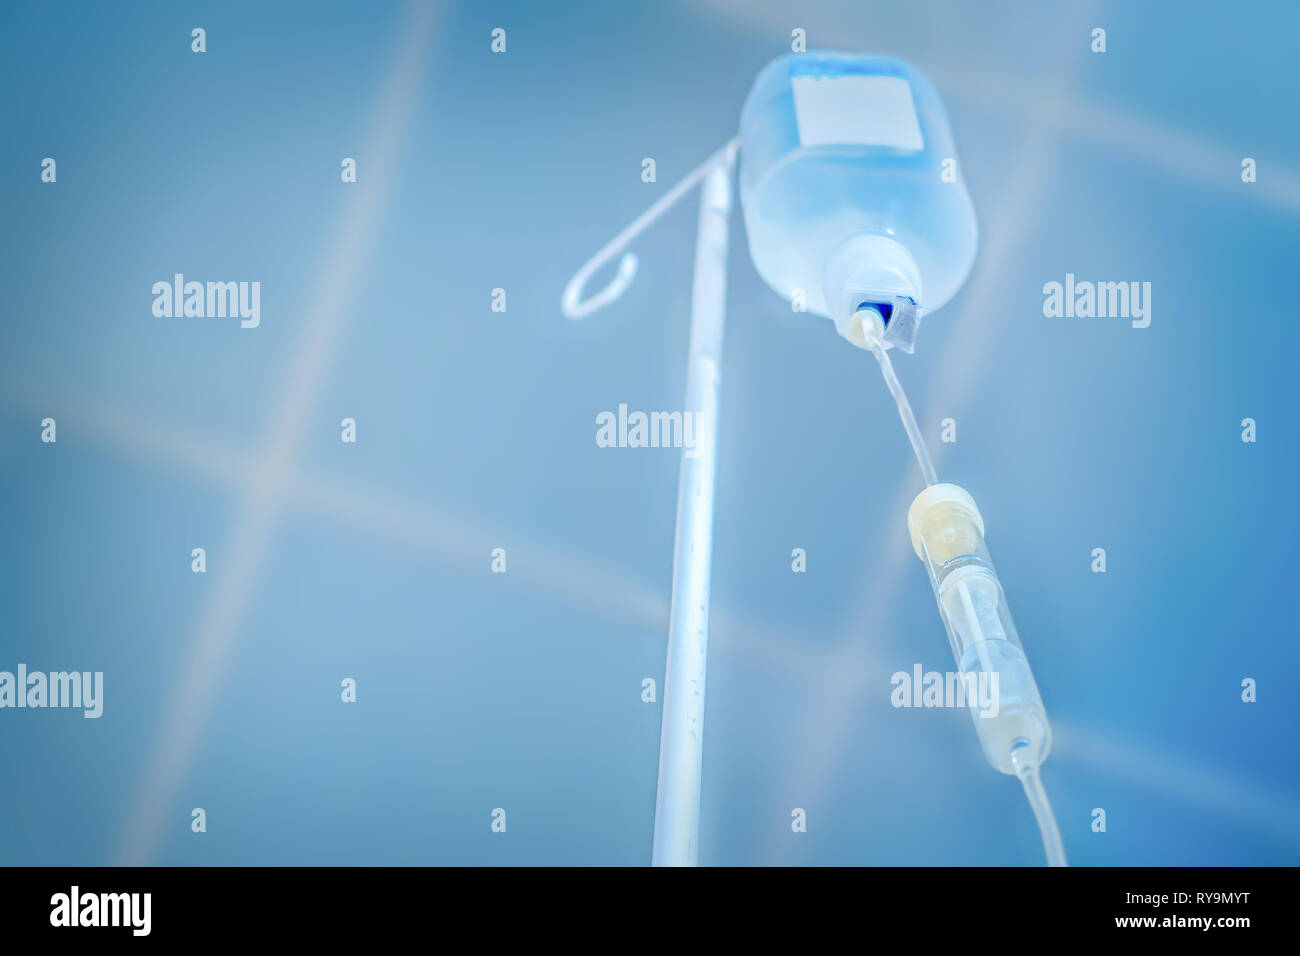 Private medicine. Anesthesia. Traditional medicine. Infusion drip, drop counter in hospital background. Preparing for surgery. Painless concept - Stock Image